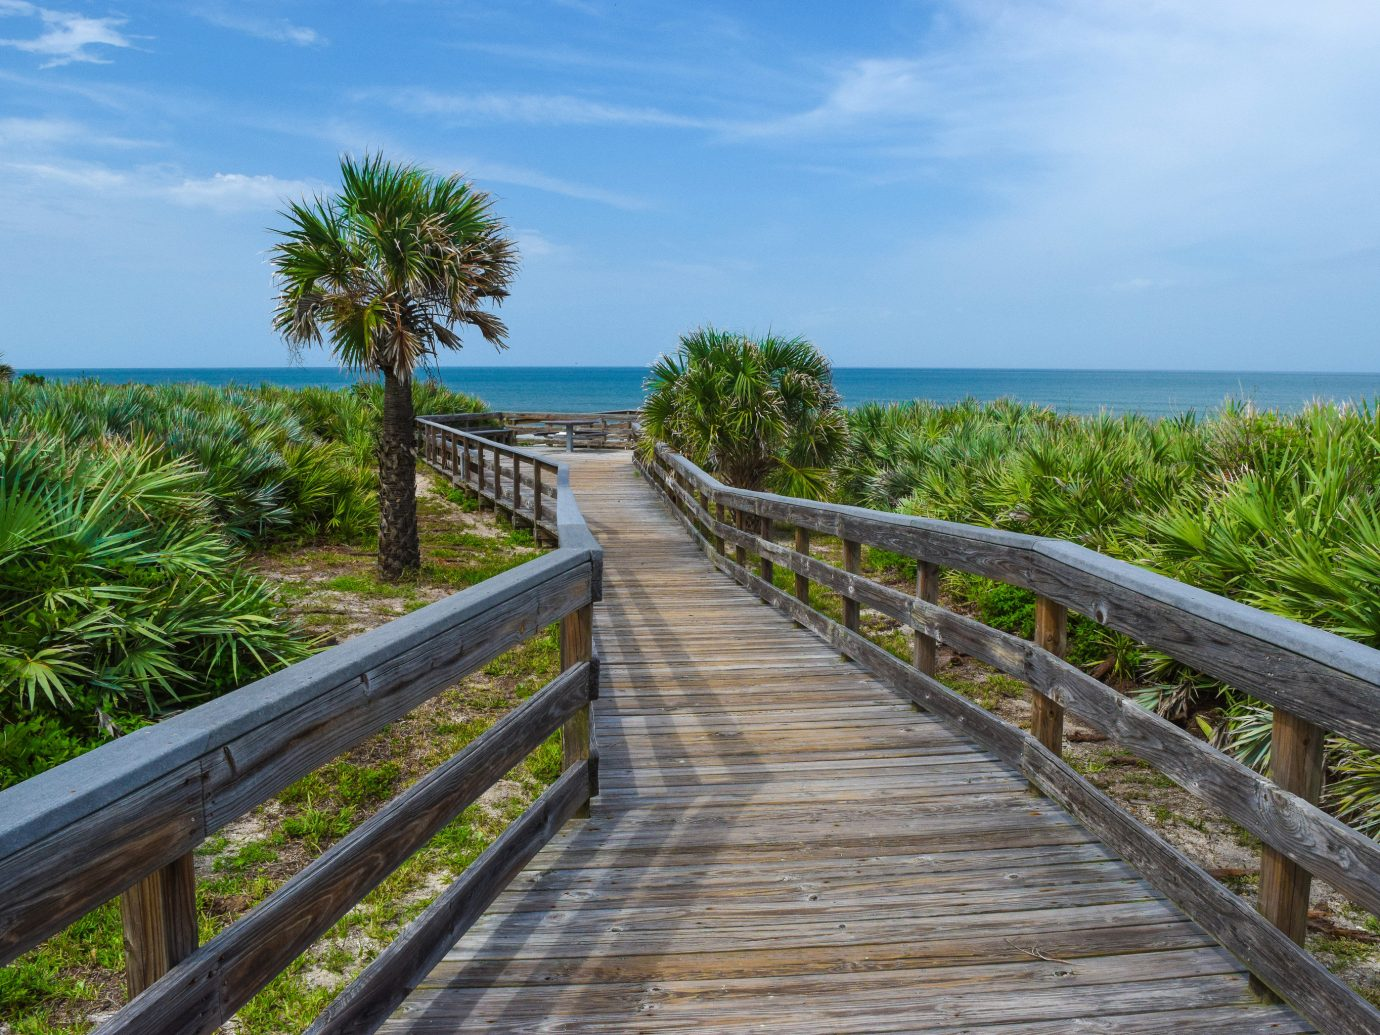 Road Trips Trip Ideas sky outdoor bench wooden boardwalk walkway vegetation plant Sea Coast Ocean arecales tree shore palm tree Beach tropics grass real estate water railing landscape vacation cloud overlooking